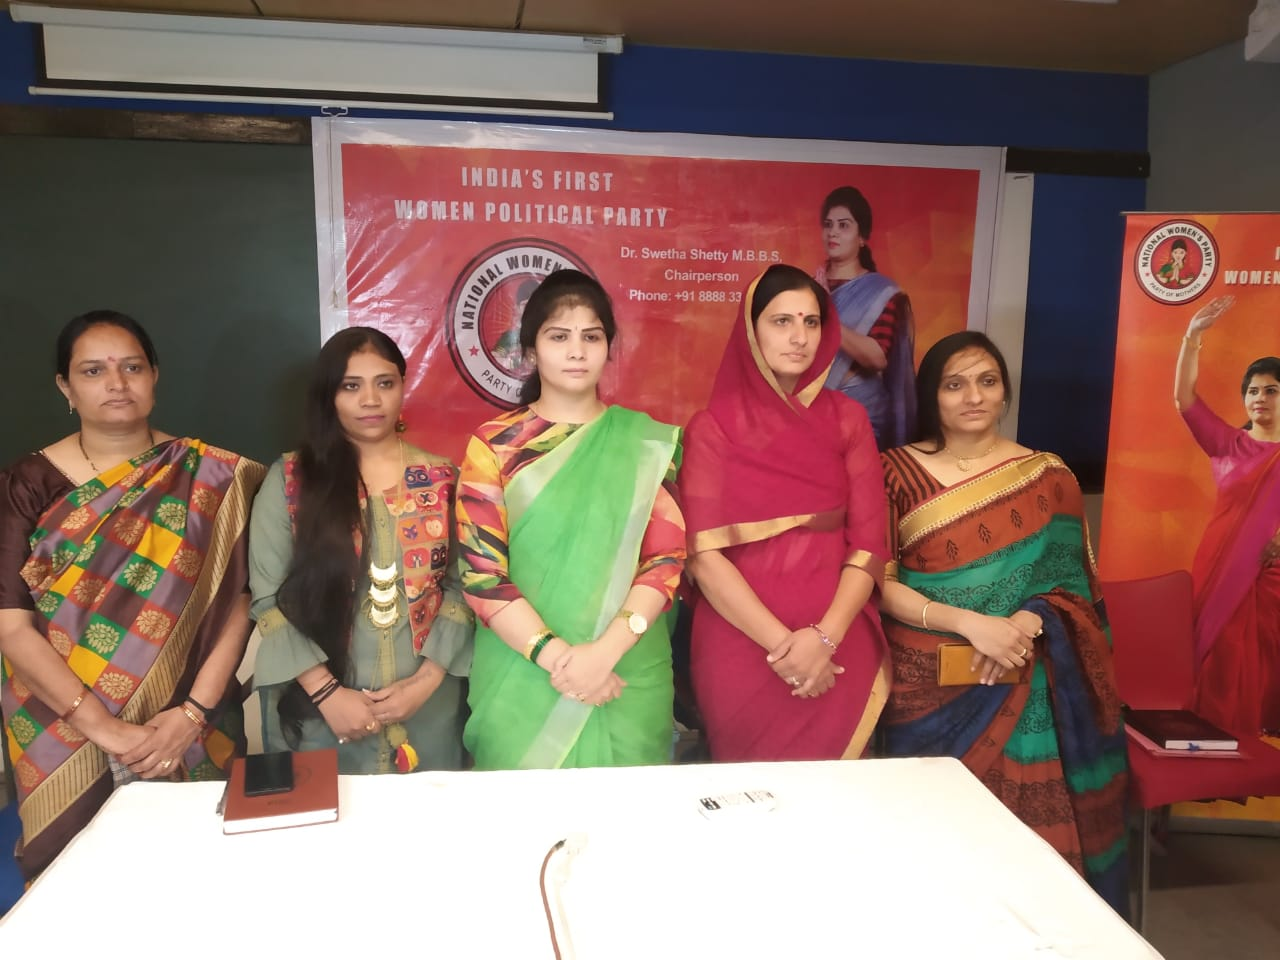 Dr Swetha Shetty, MBBS, Chairperson, National Women's Party